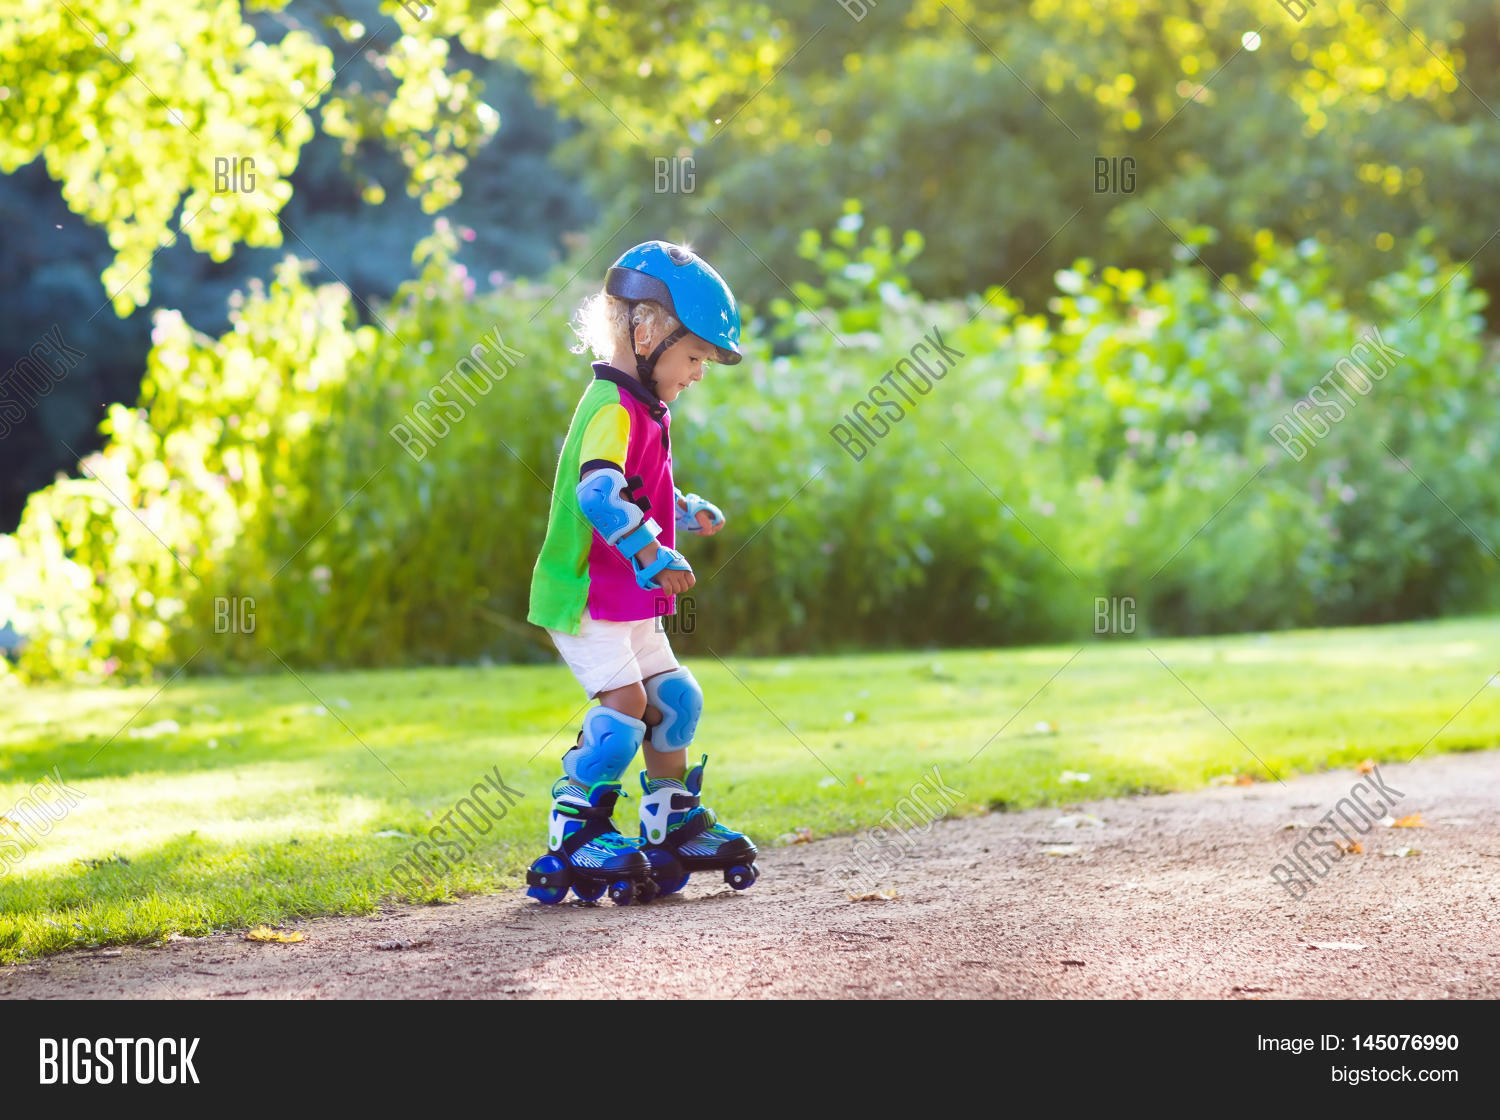 Roller skating helmet